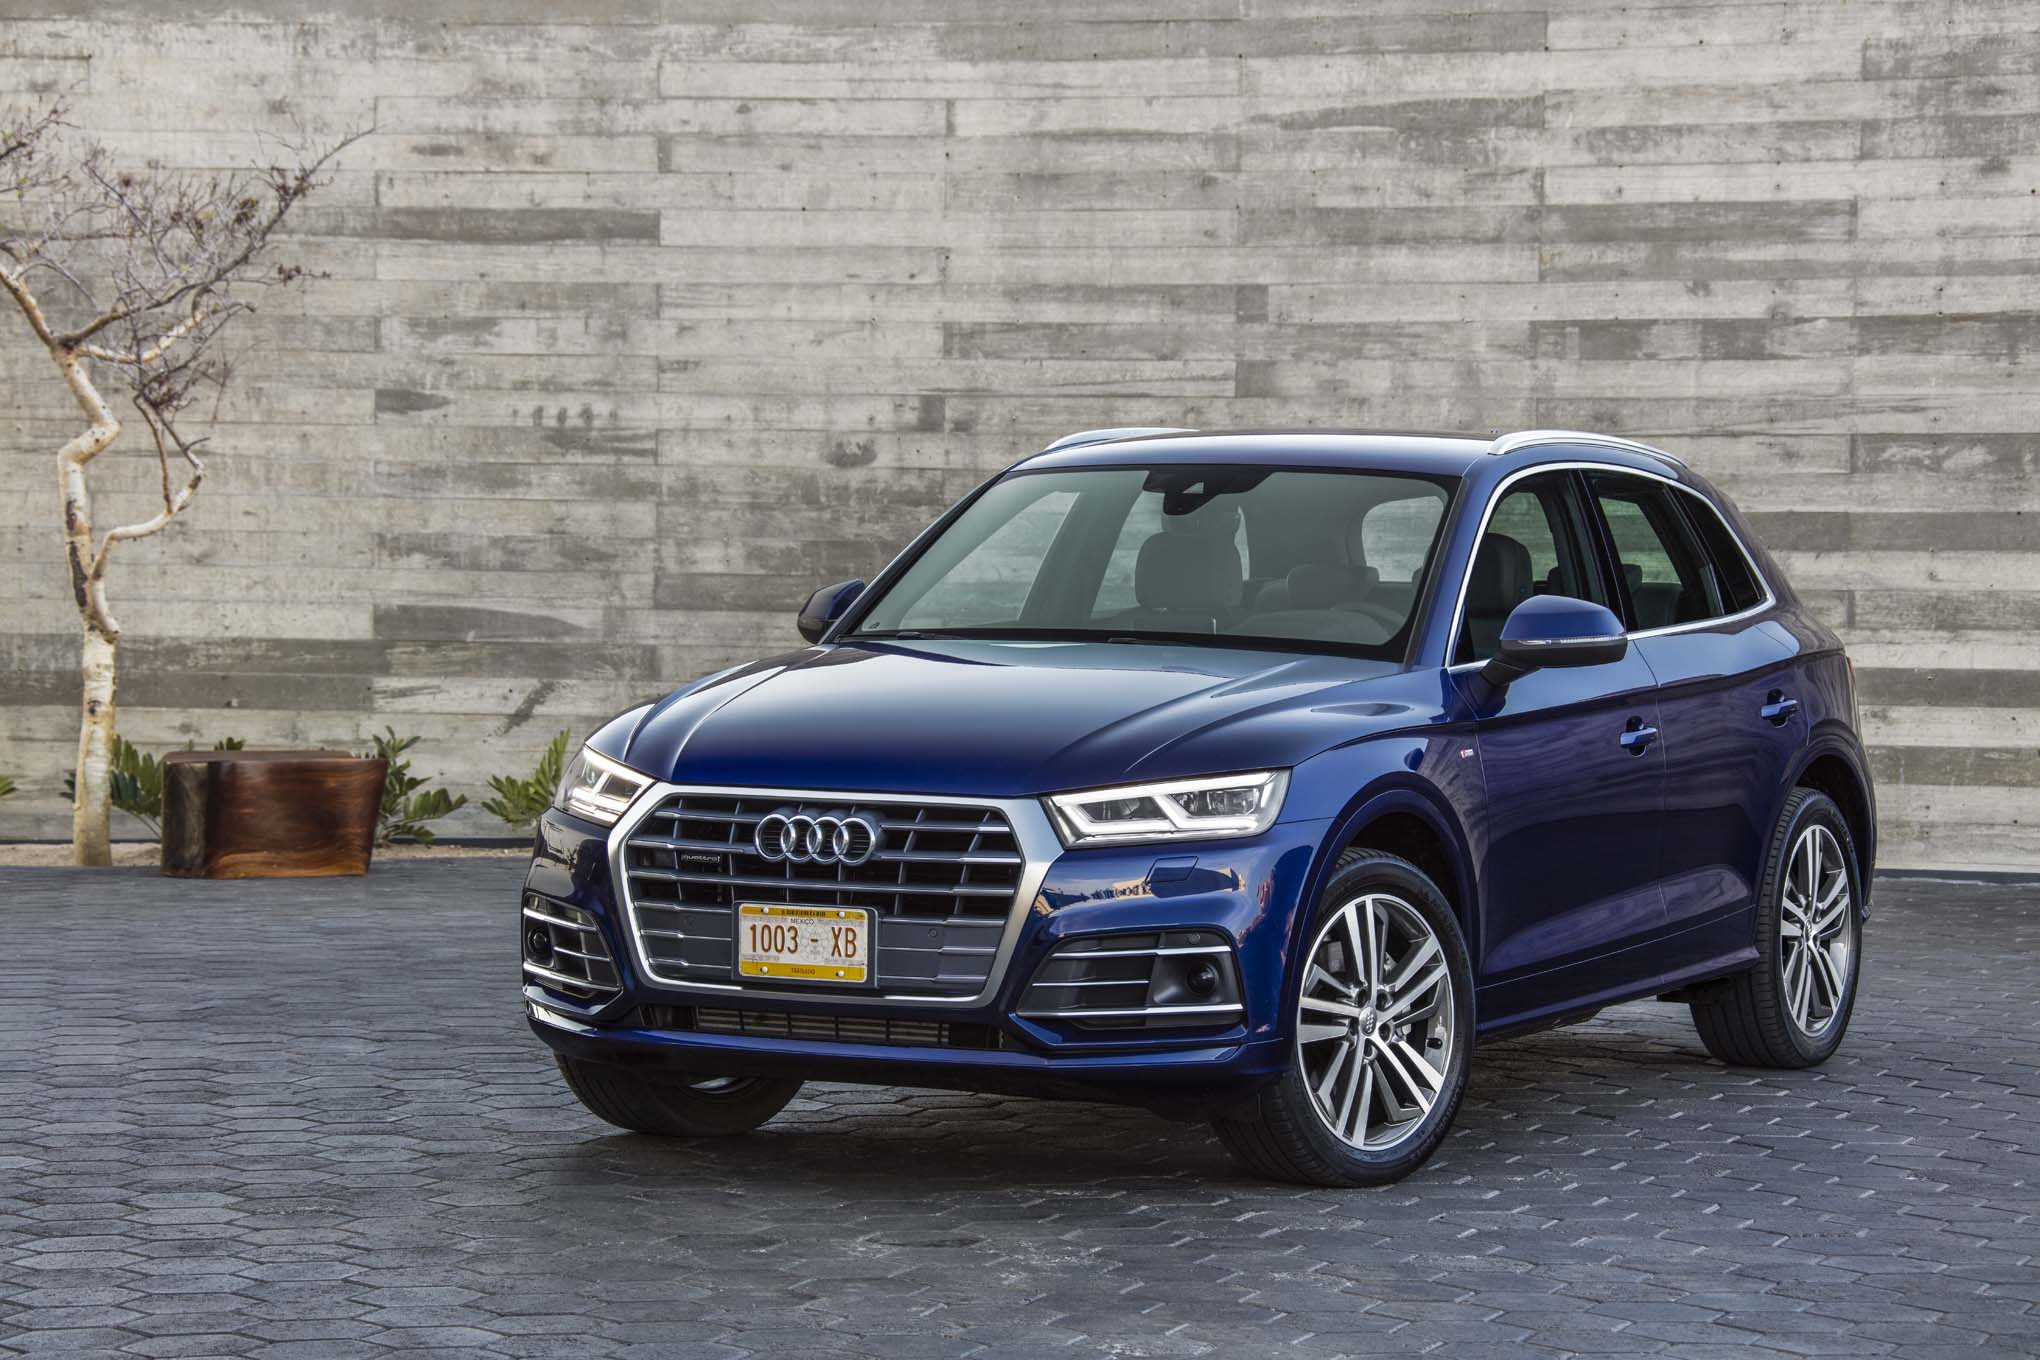 2018 audi q5 review first impressions. Black Bedroom Furniture Sets. Home Design Ideas